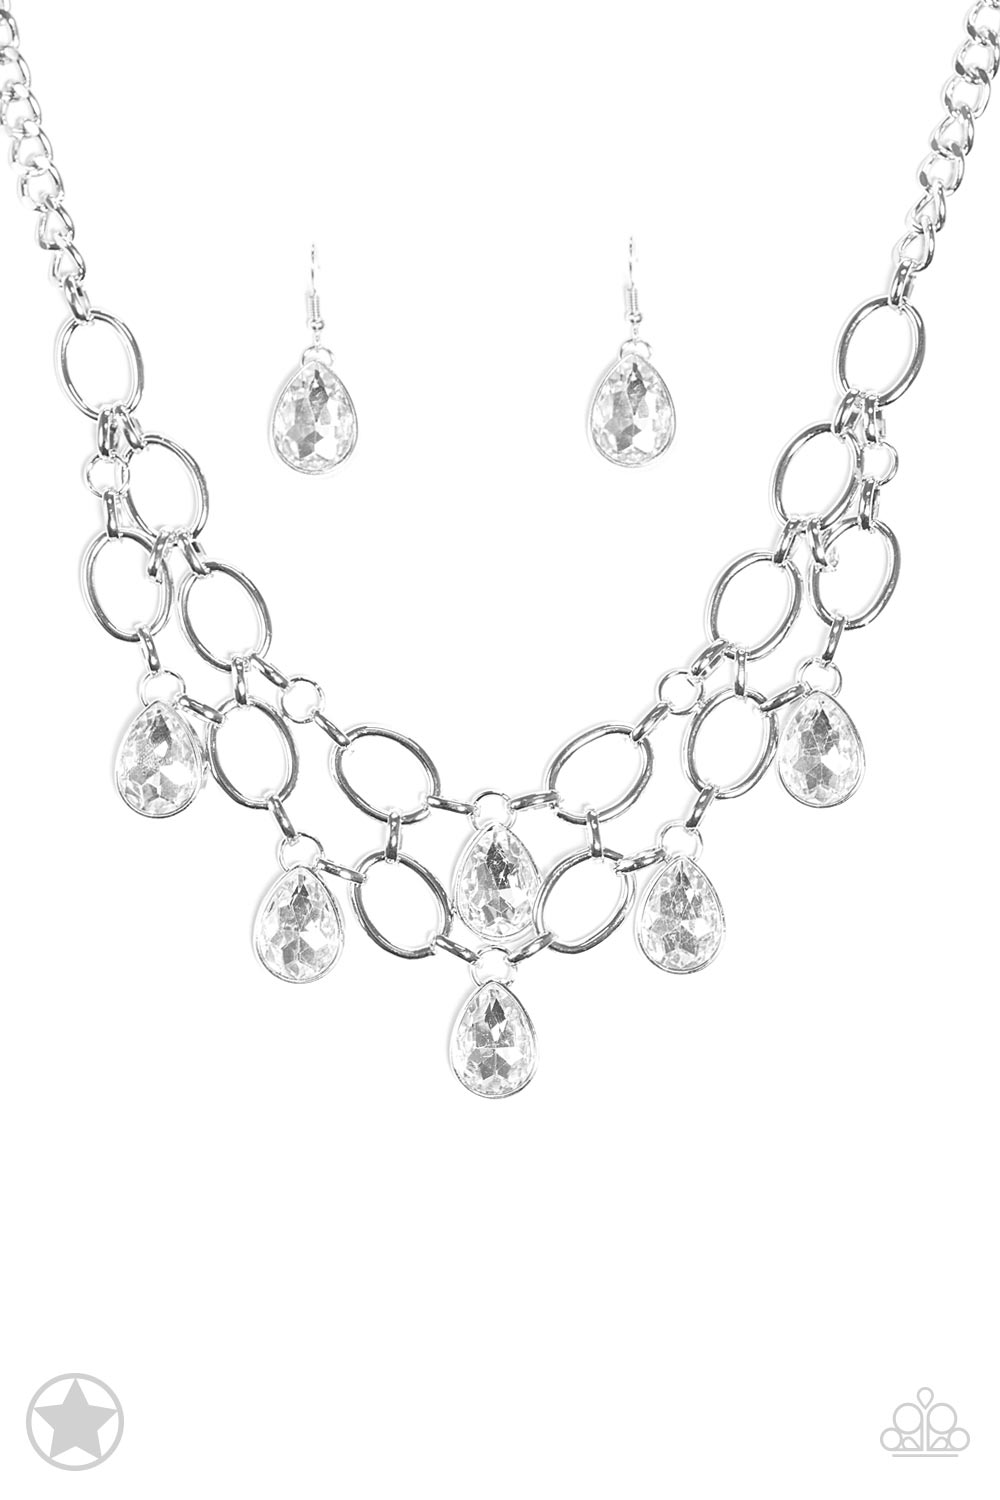 Show-Stopping Shimmer White Teardrop Necklace $5.00 www.my-bling.com